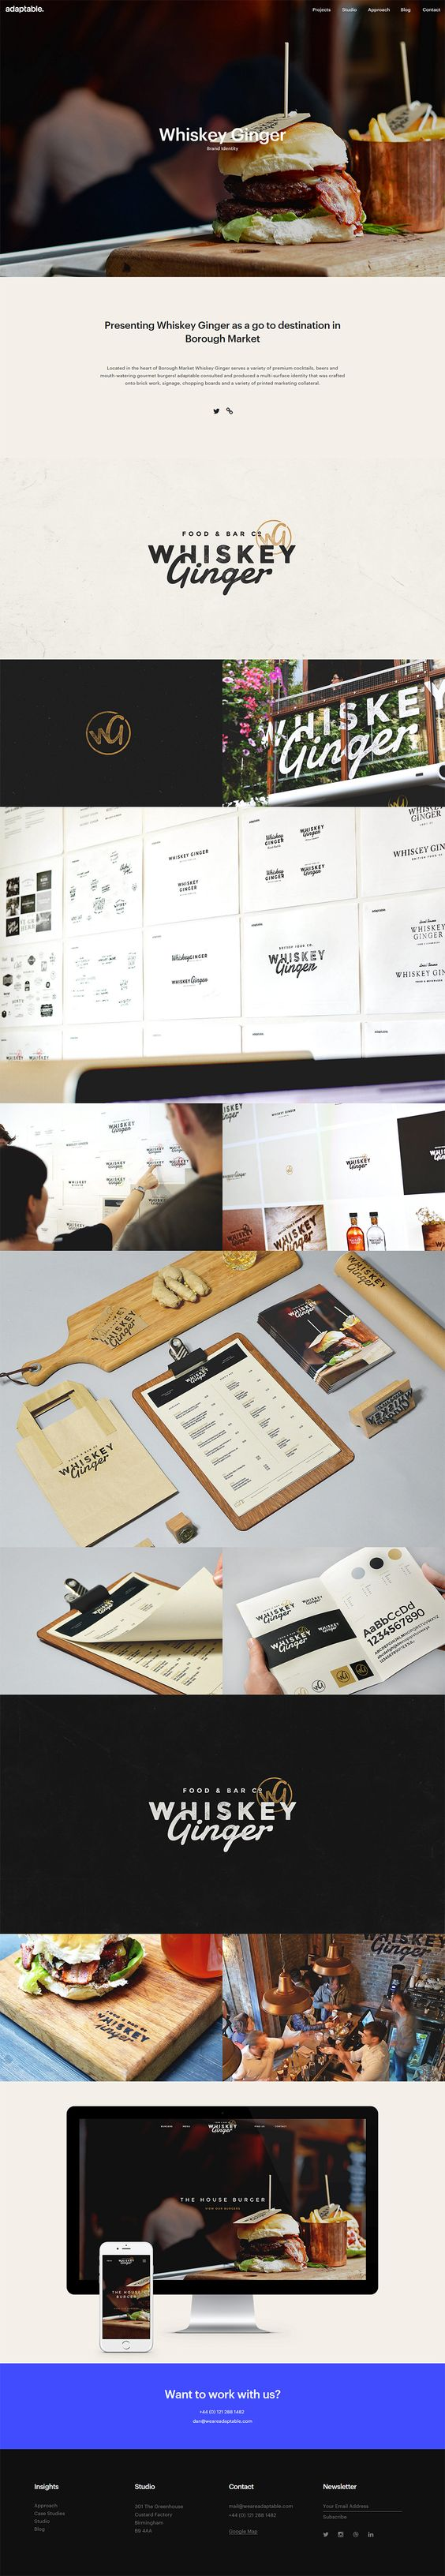 Case study layout for brand identity design of a whiskey bar